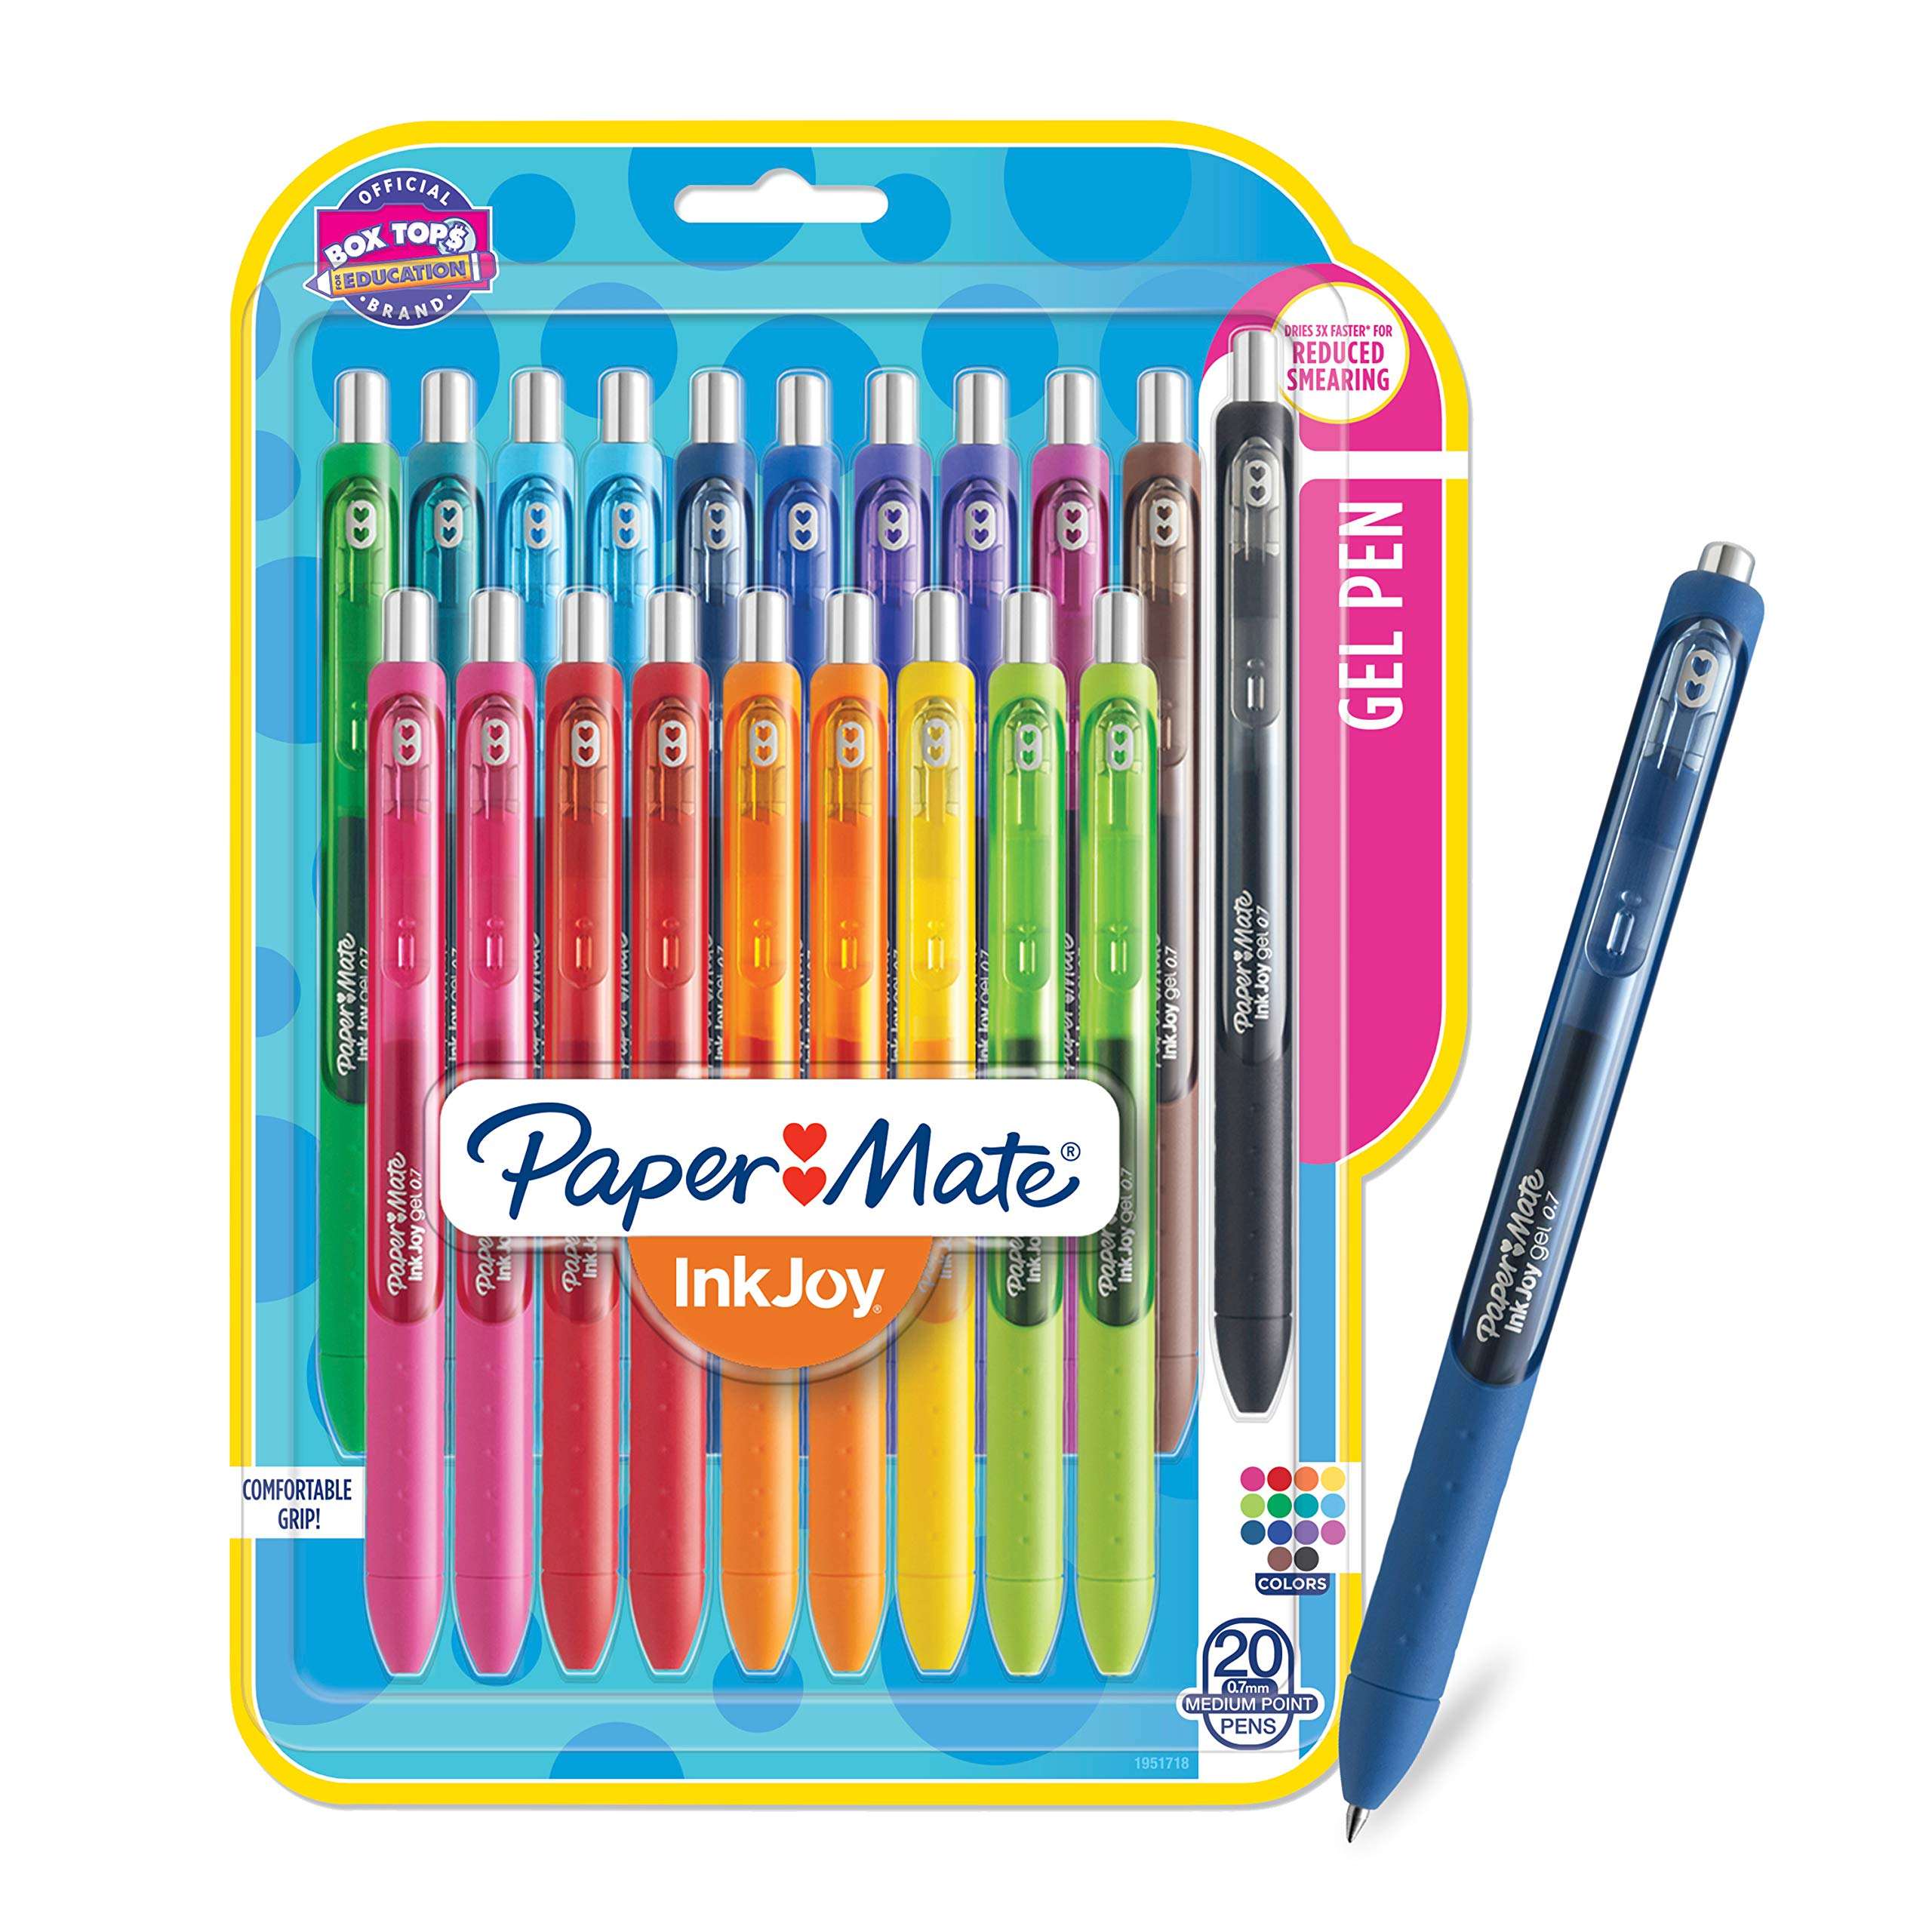 Paper Mate InkJoy Gel Pens, Medium Point, Assorted Colors, 20 Count - 1951718 by PAPER MATE